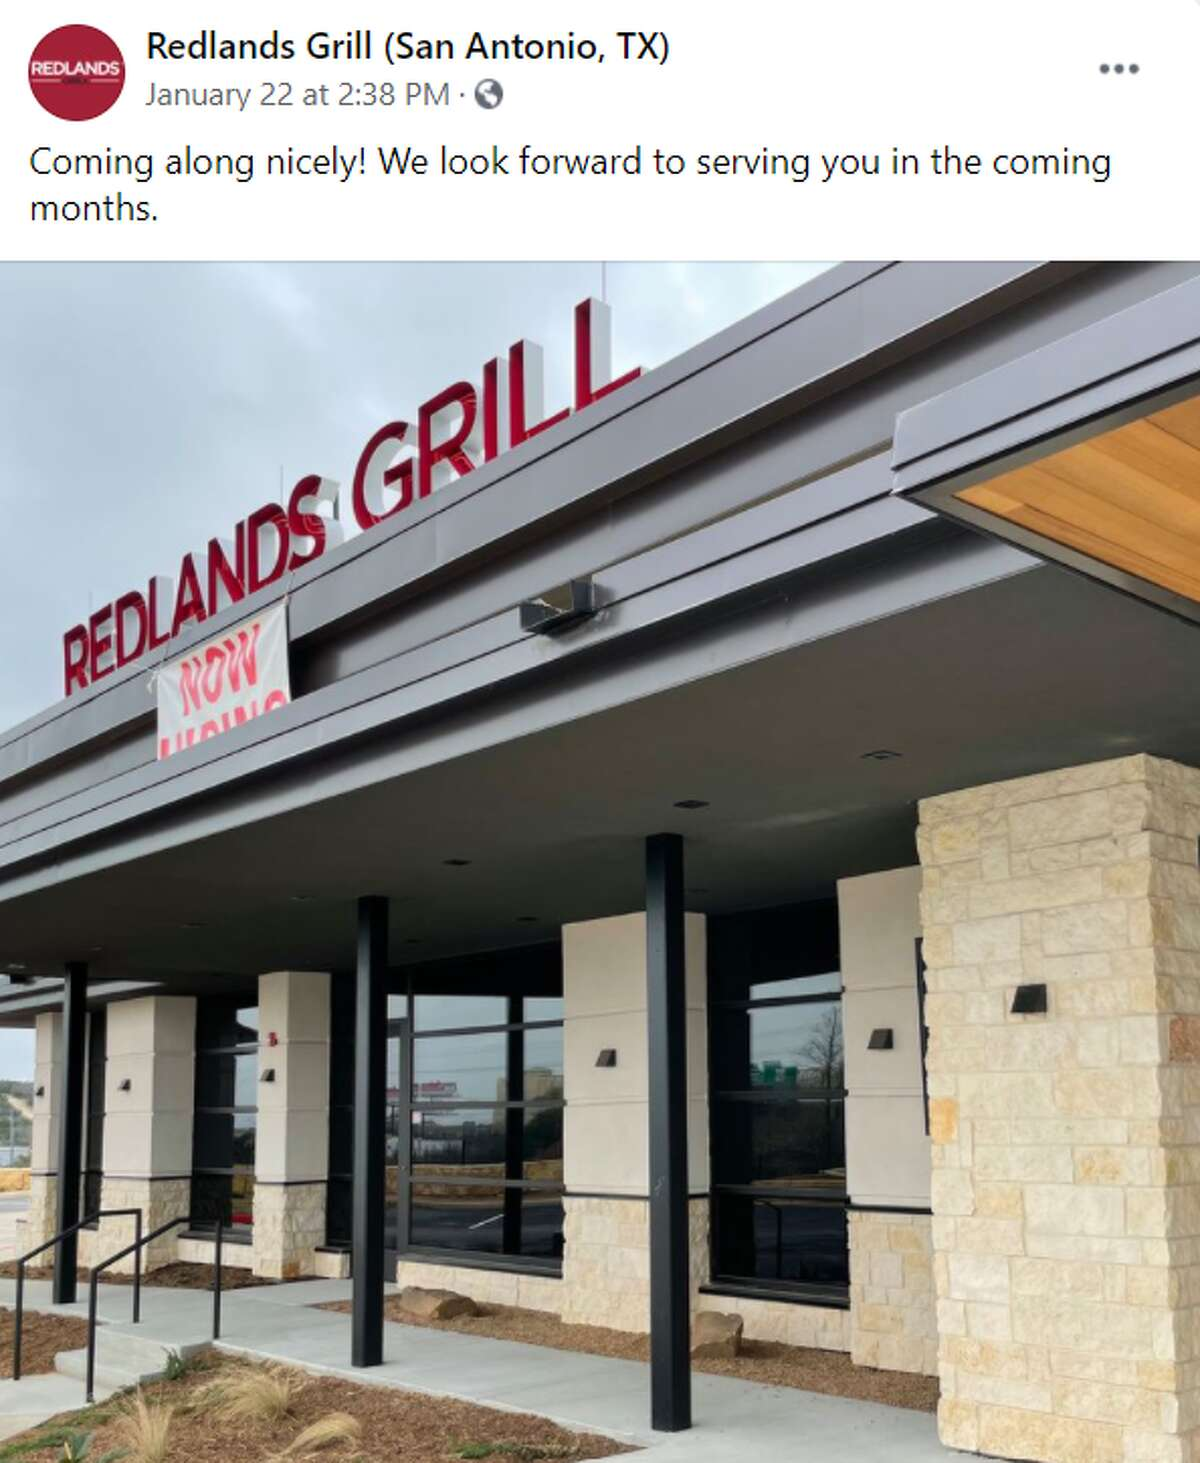 """The grill at 17422 Fiesta Texas Drive was expected to open in the first half of 2020. According to the website and social media pages, the date was pushed back to March 29, 2021. Social media promotions say the location is """"coming along nicely."""""""